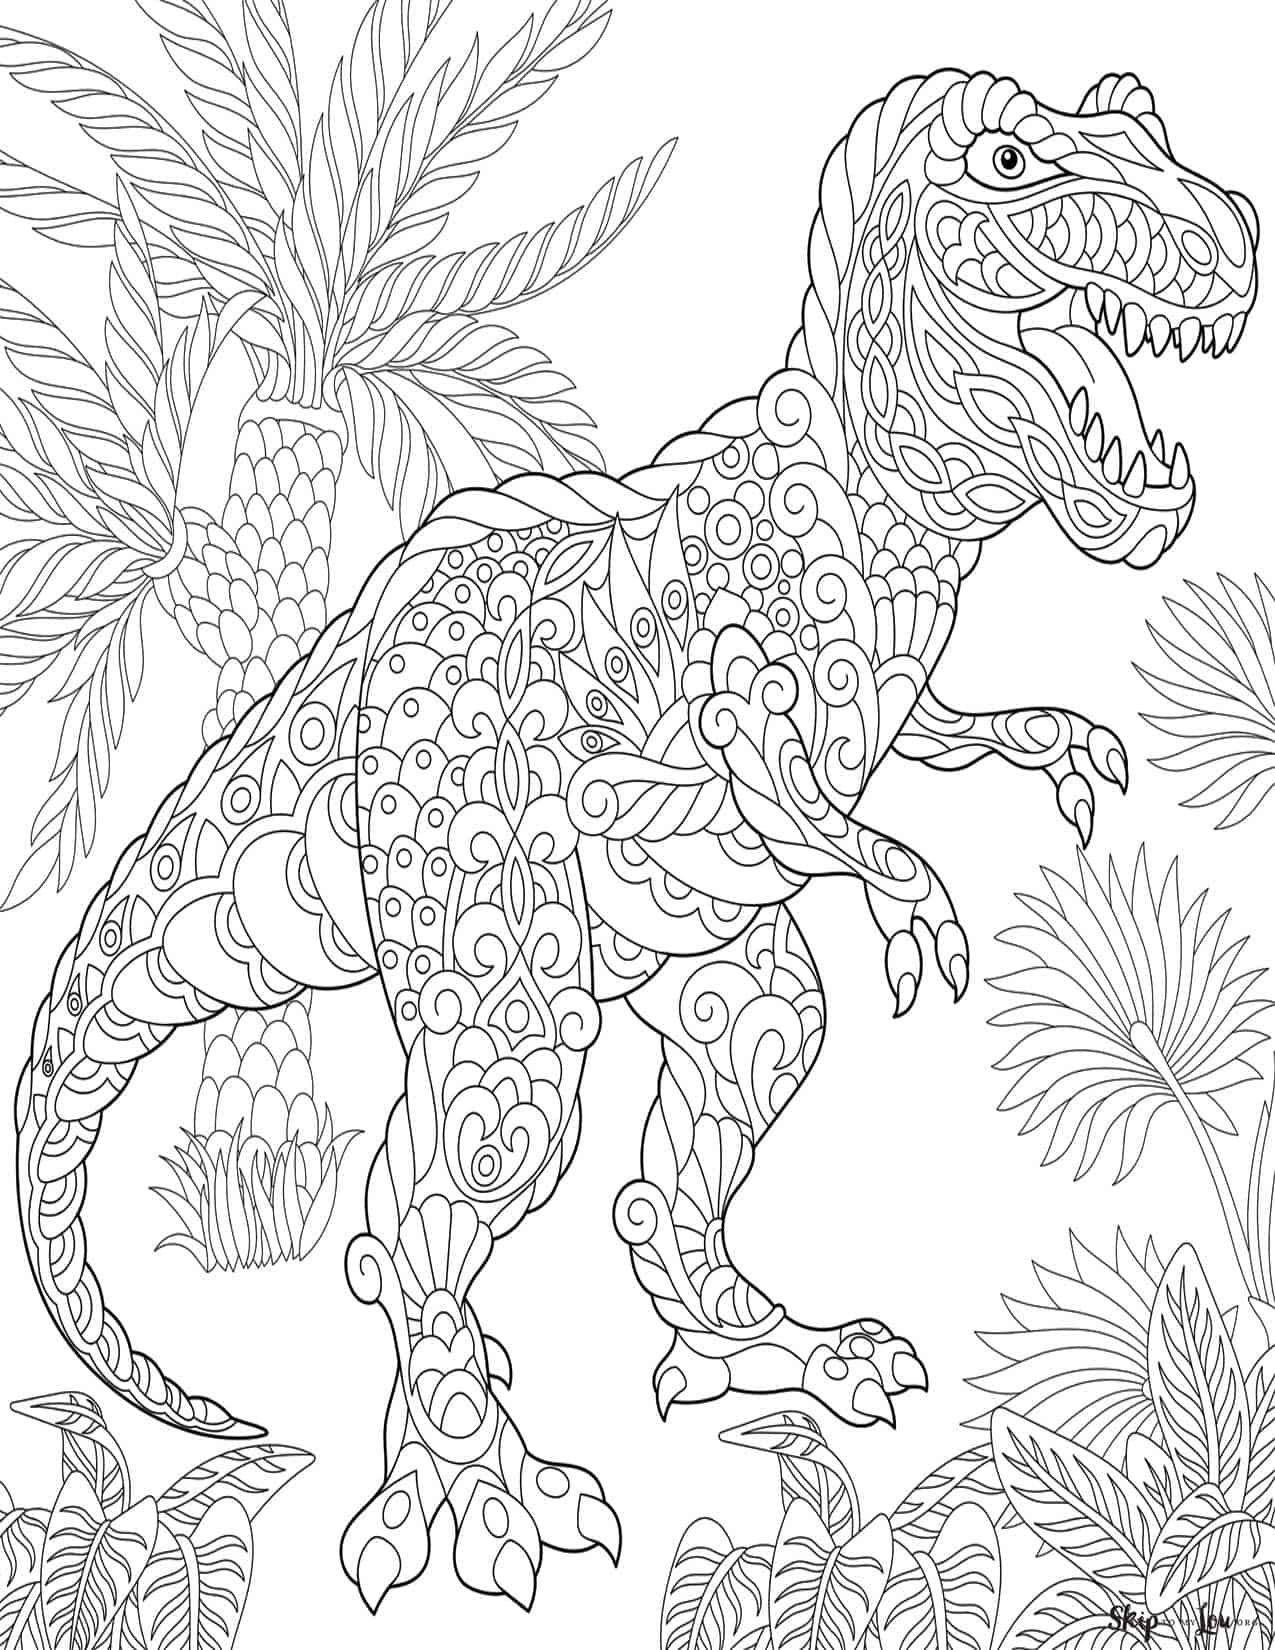 Dinosaur Art Coloring Pages Design